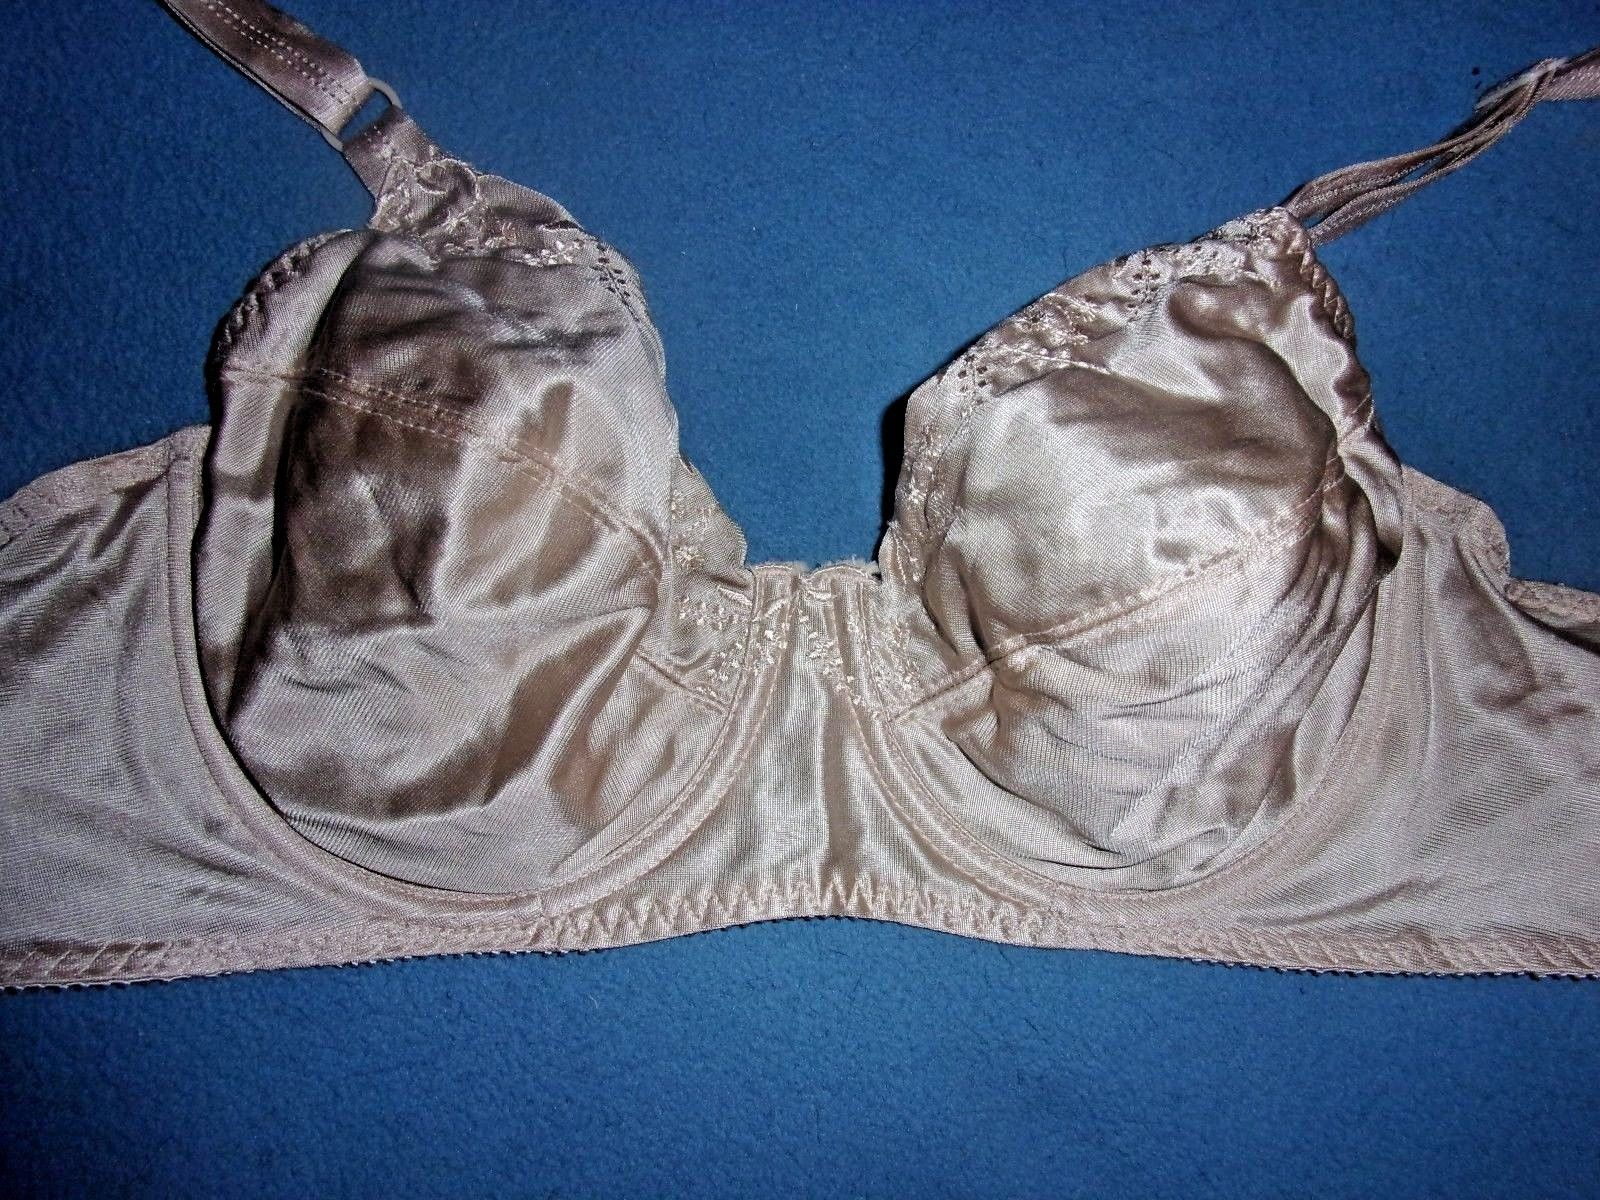 00cac312ee004 34D Vintage Underscene Lined Underwire Full and 50 similar items